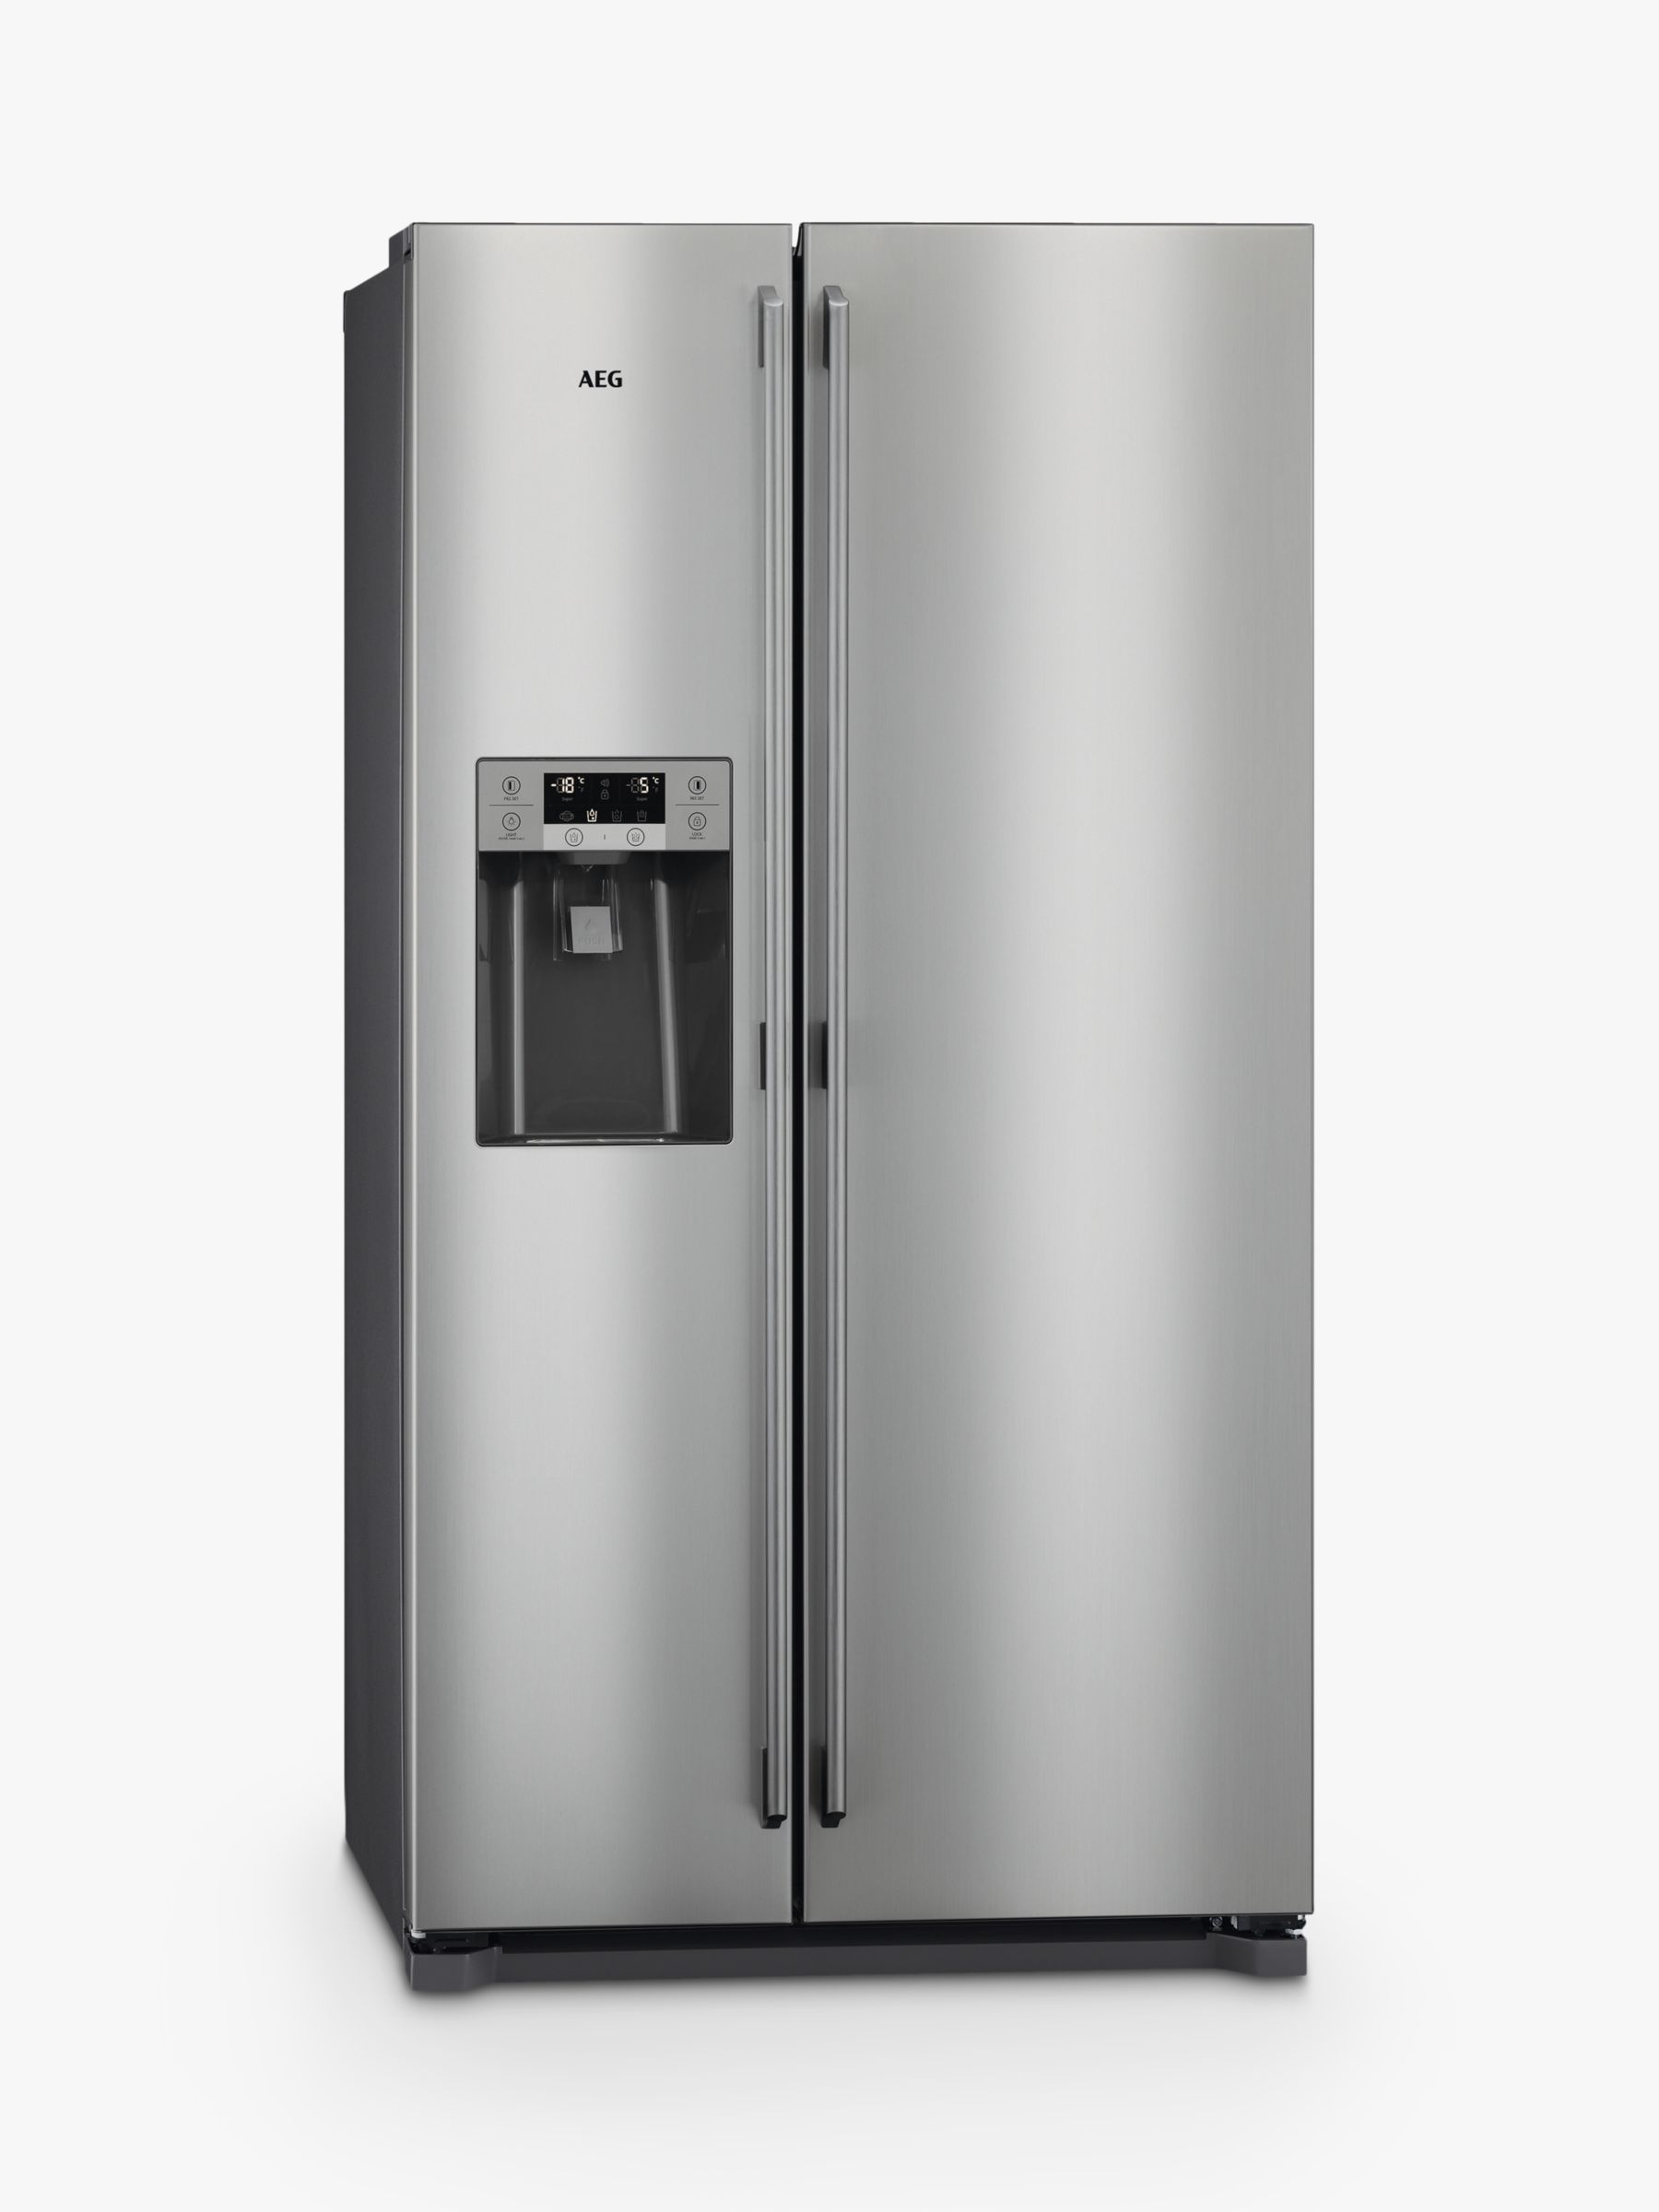 AEG AEG RMB76111NX American Style Fridge Freezer, A+ Energy Rating, 91.2cm Wide, Stainless Steel